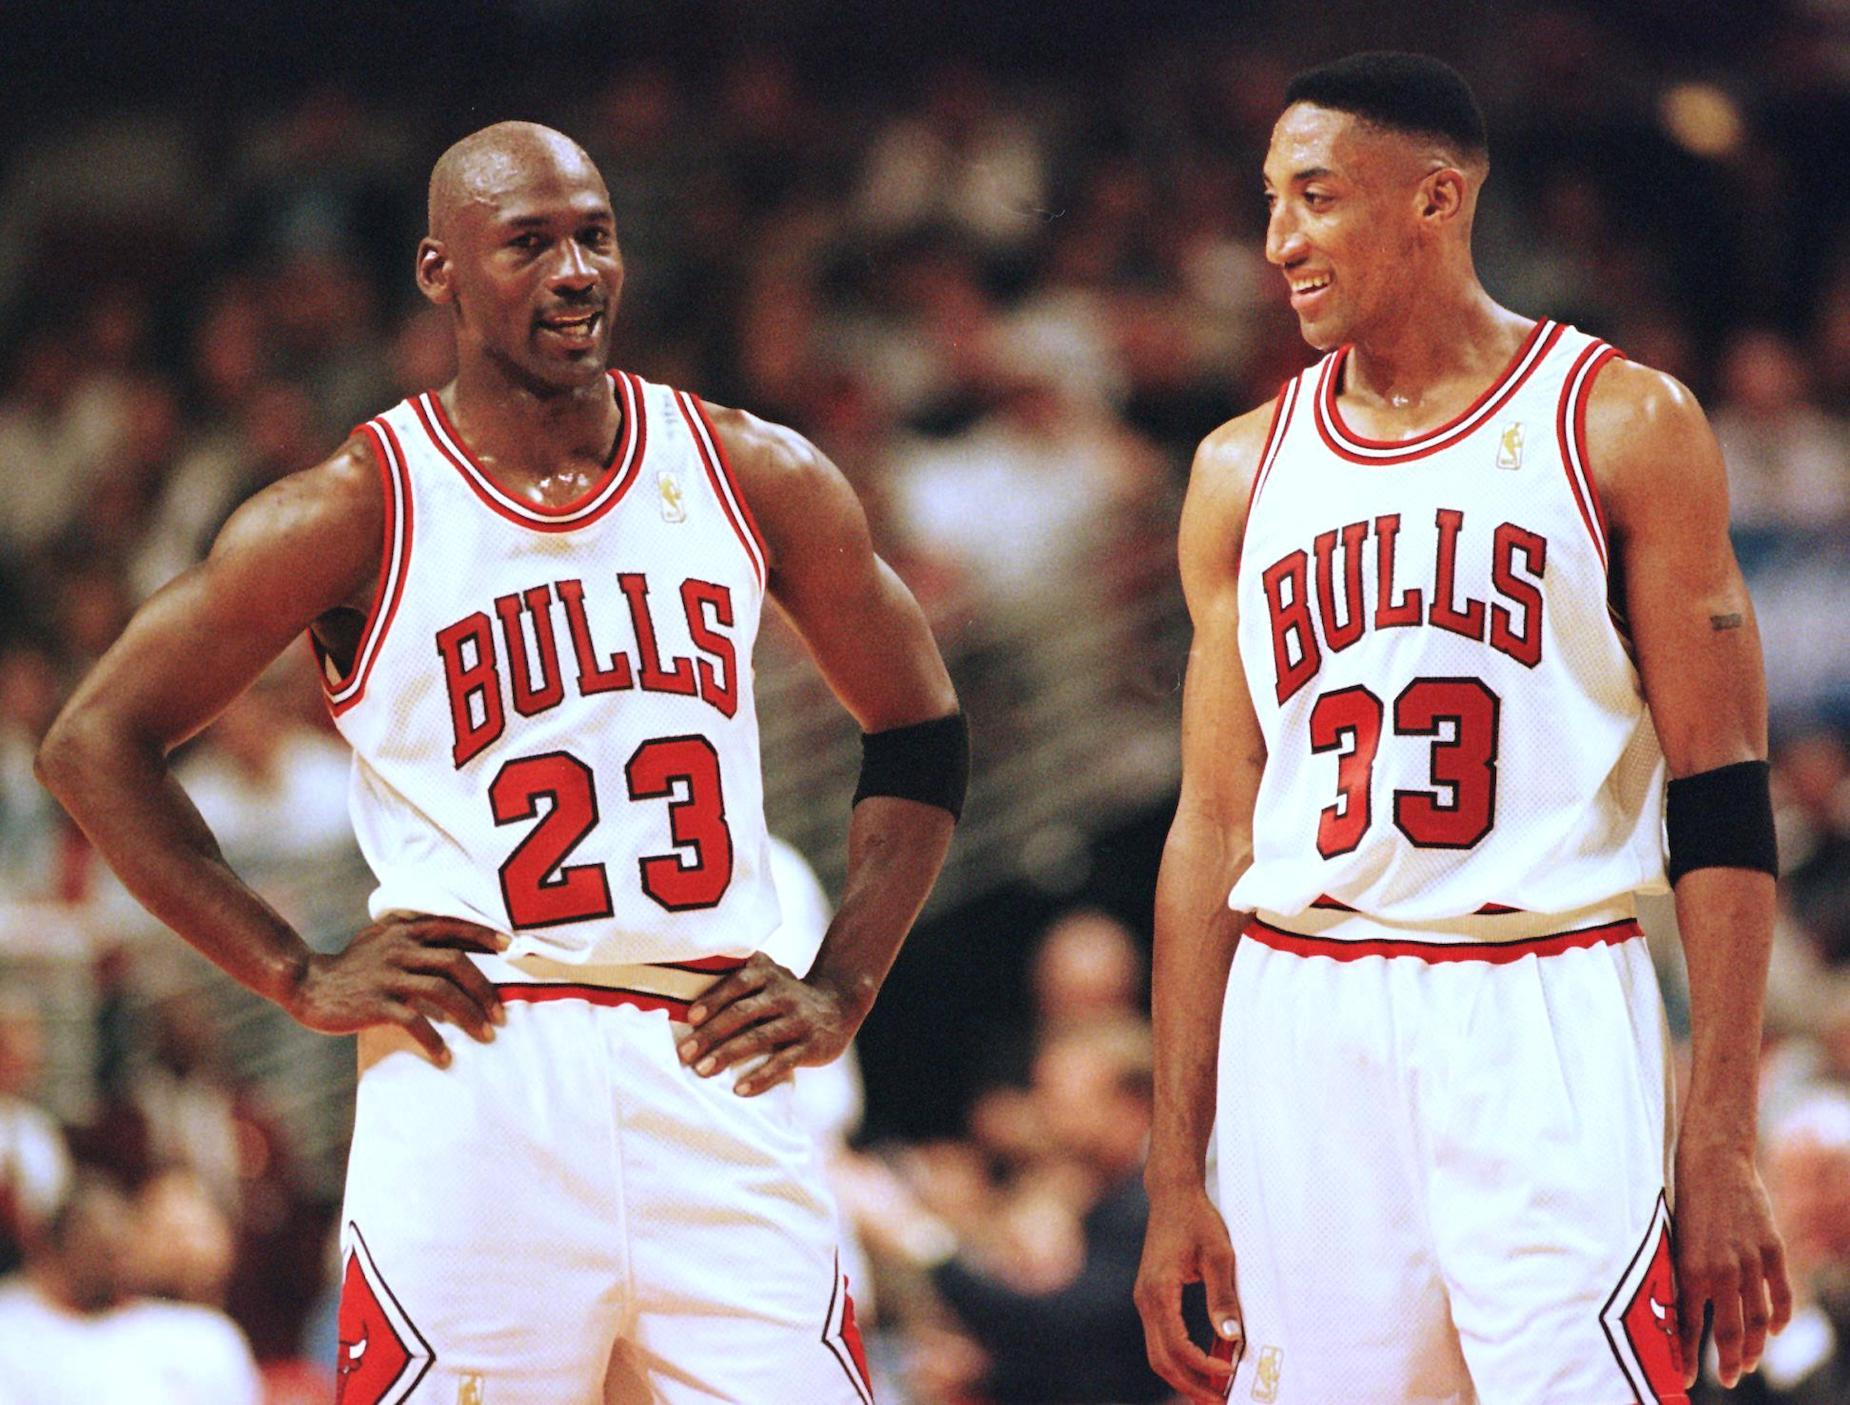 Scottie Pippen Gets Real About the Inaccuracies of 'The Last Dance': 'I Wasn't Too Pleased With It'